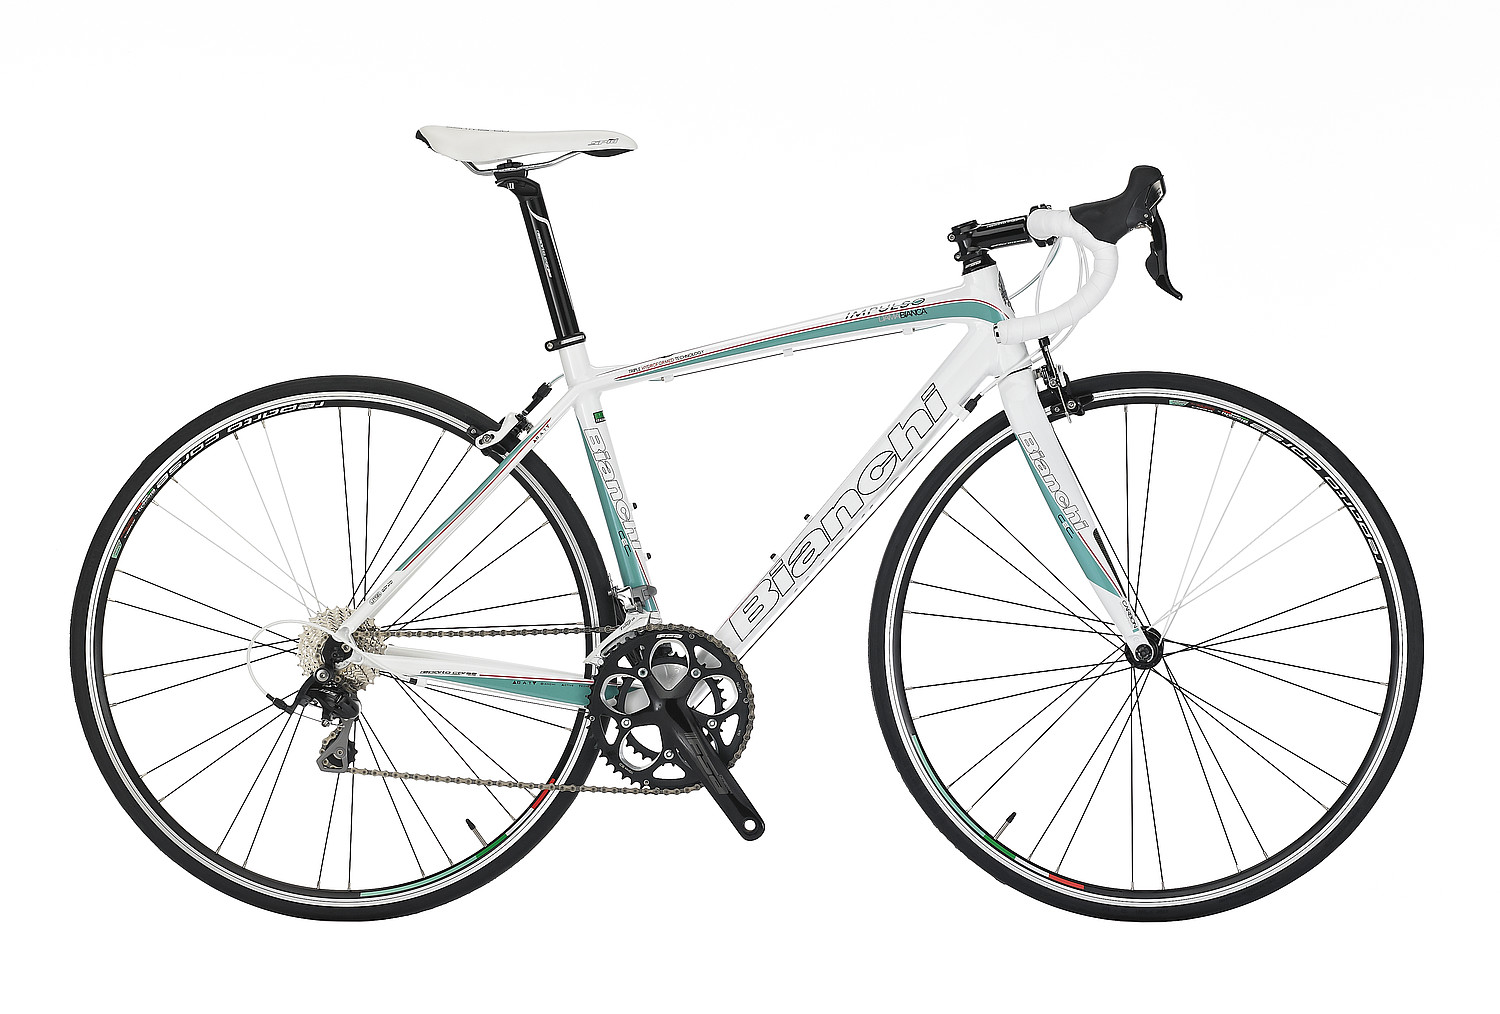 Bianchi Impulso Dama 105 - Sales Price $1,299.99 (Regular Price $1,499.99)Impulso triple-hyrdroformed aluminum frame, carbon fork, Shimano 105 2 x 10 speed shifting, Reparto Corse caliper brakes.Available Sizes: 46cm, 50cm